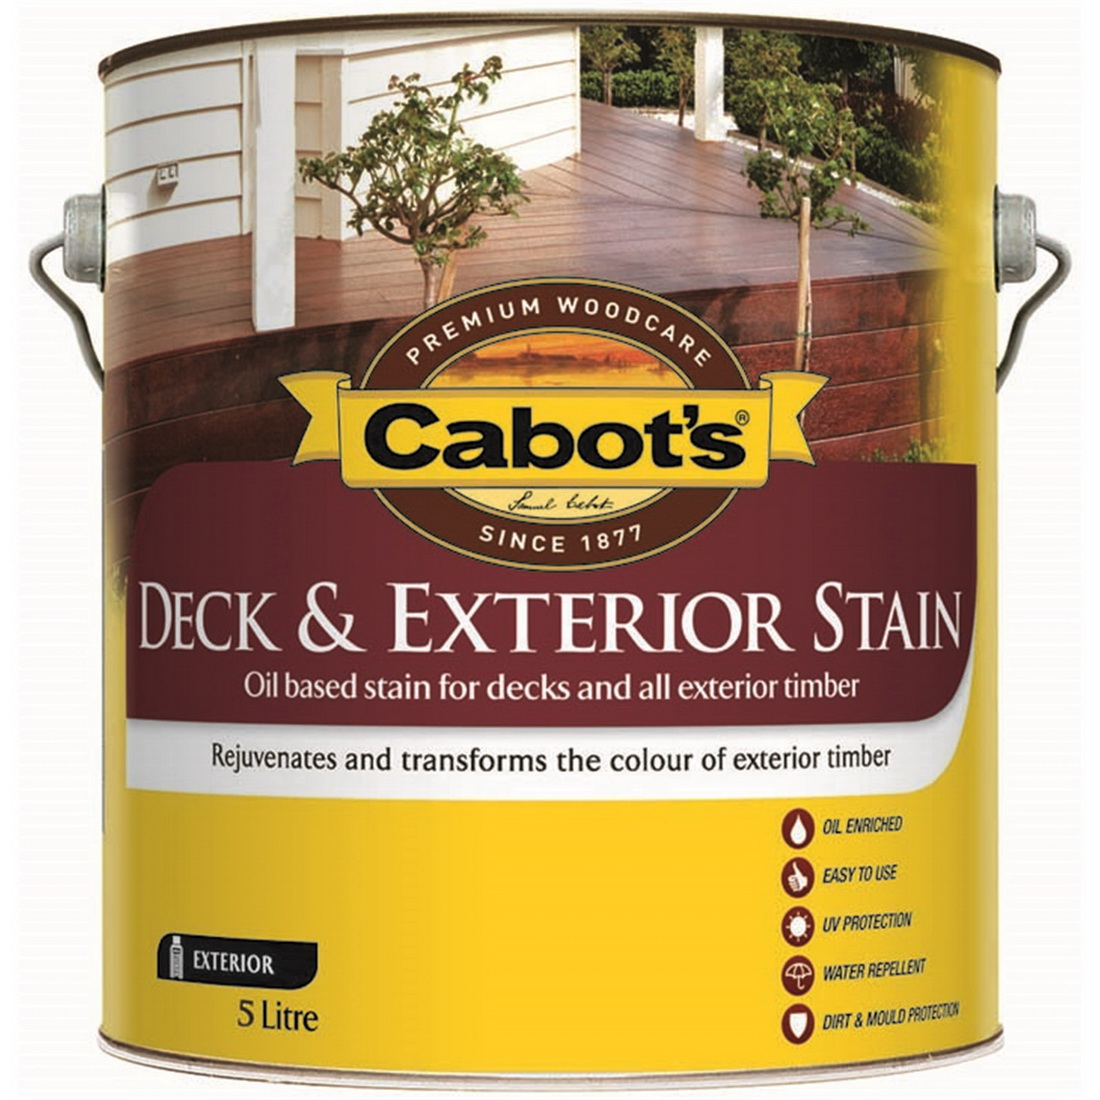 Deck & Exterior Stain Oil Based Autumn/Kwila 5L 826W0143-5L